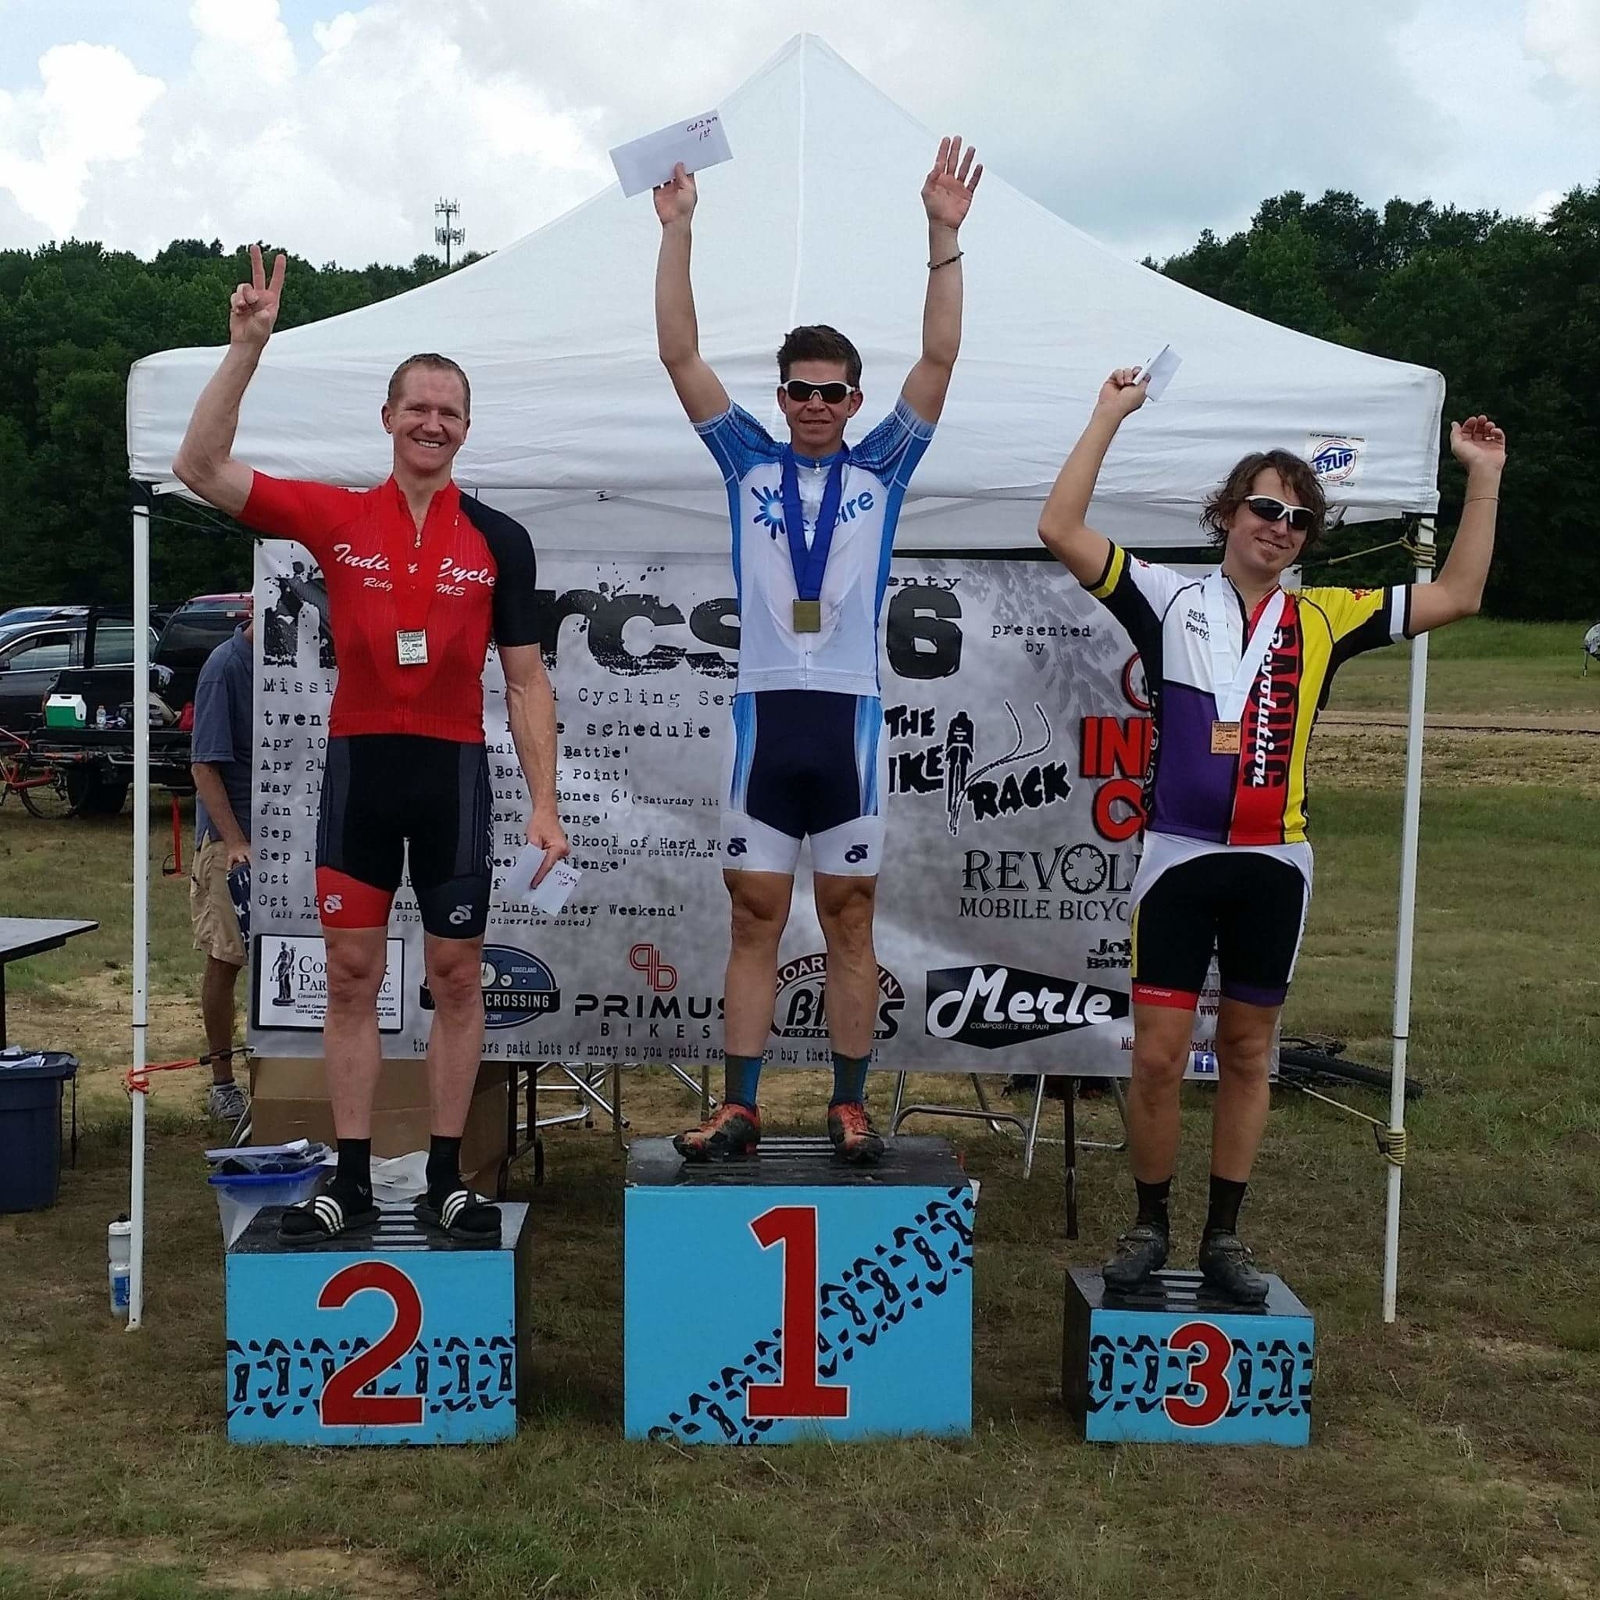 Scott Kuppersmith (center) won the 2016 Mississippi Off-Road Cycling Series state games 24-mile bike race last Sunday at Butts Park in Jackson, Miss.